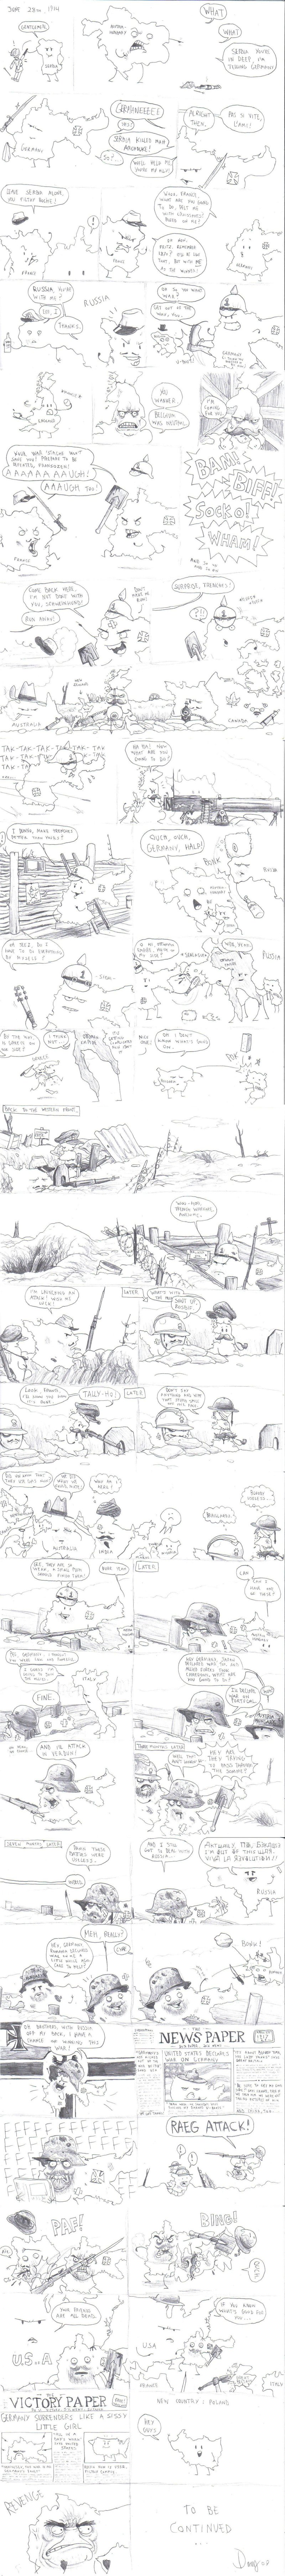 World War One Simple Version by AngusMcLeod.jpg